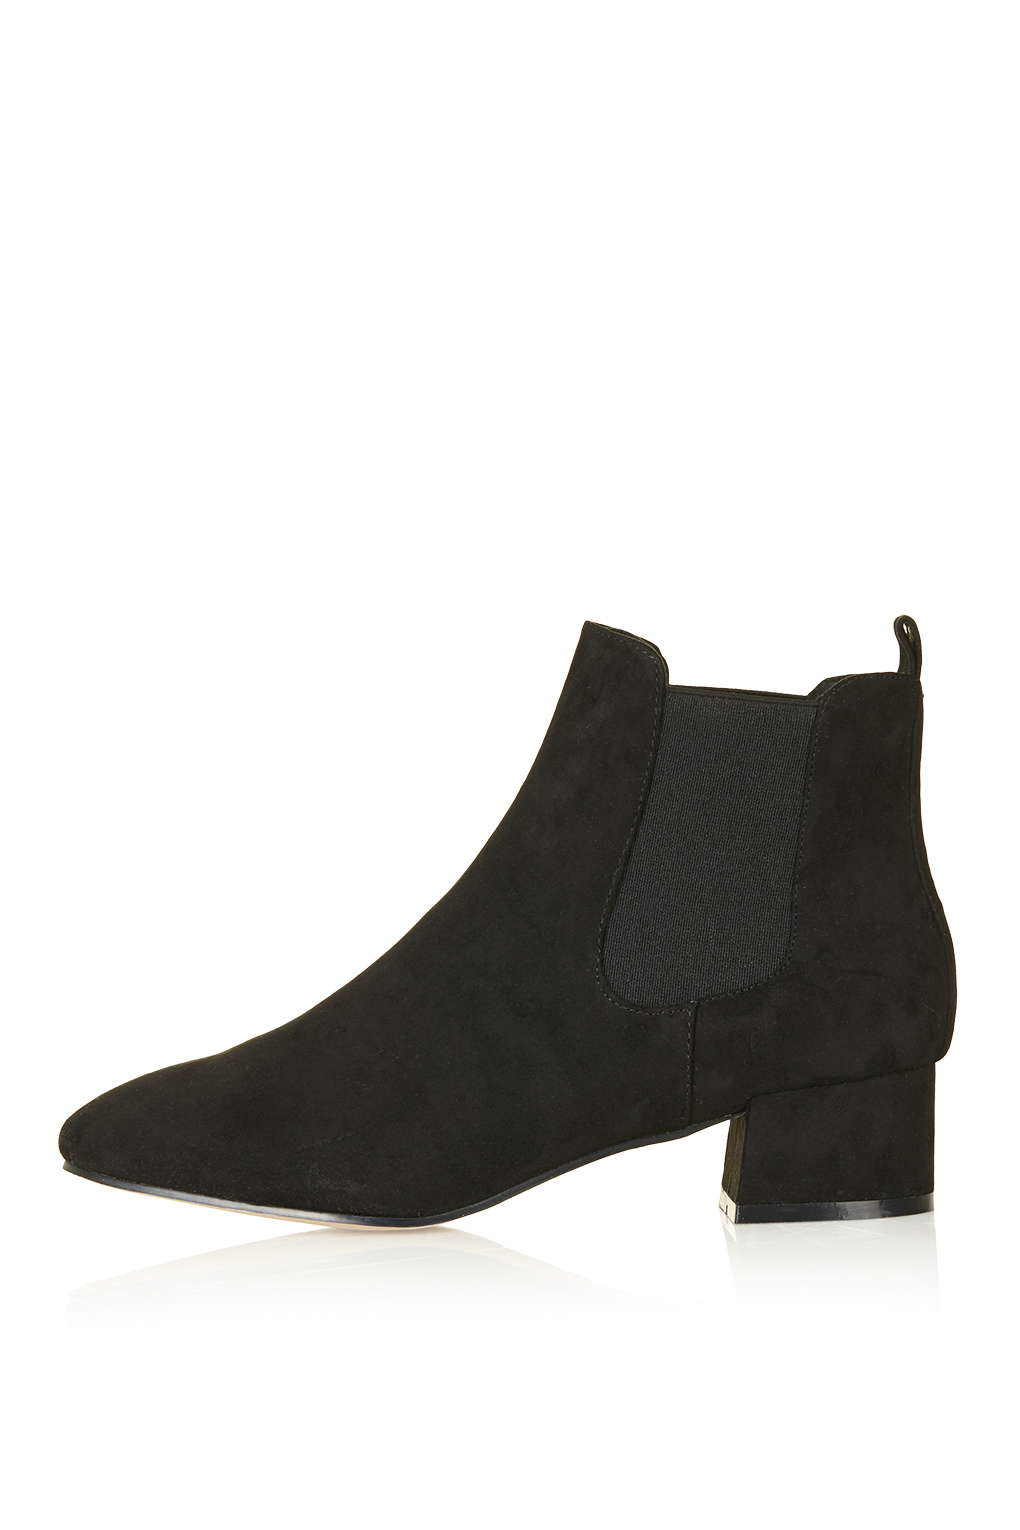 Topshop Kola Square Toe Boots In Black Lyst